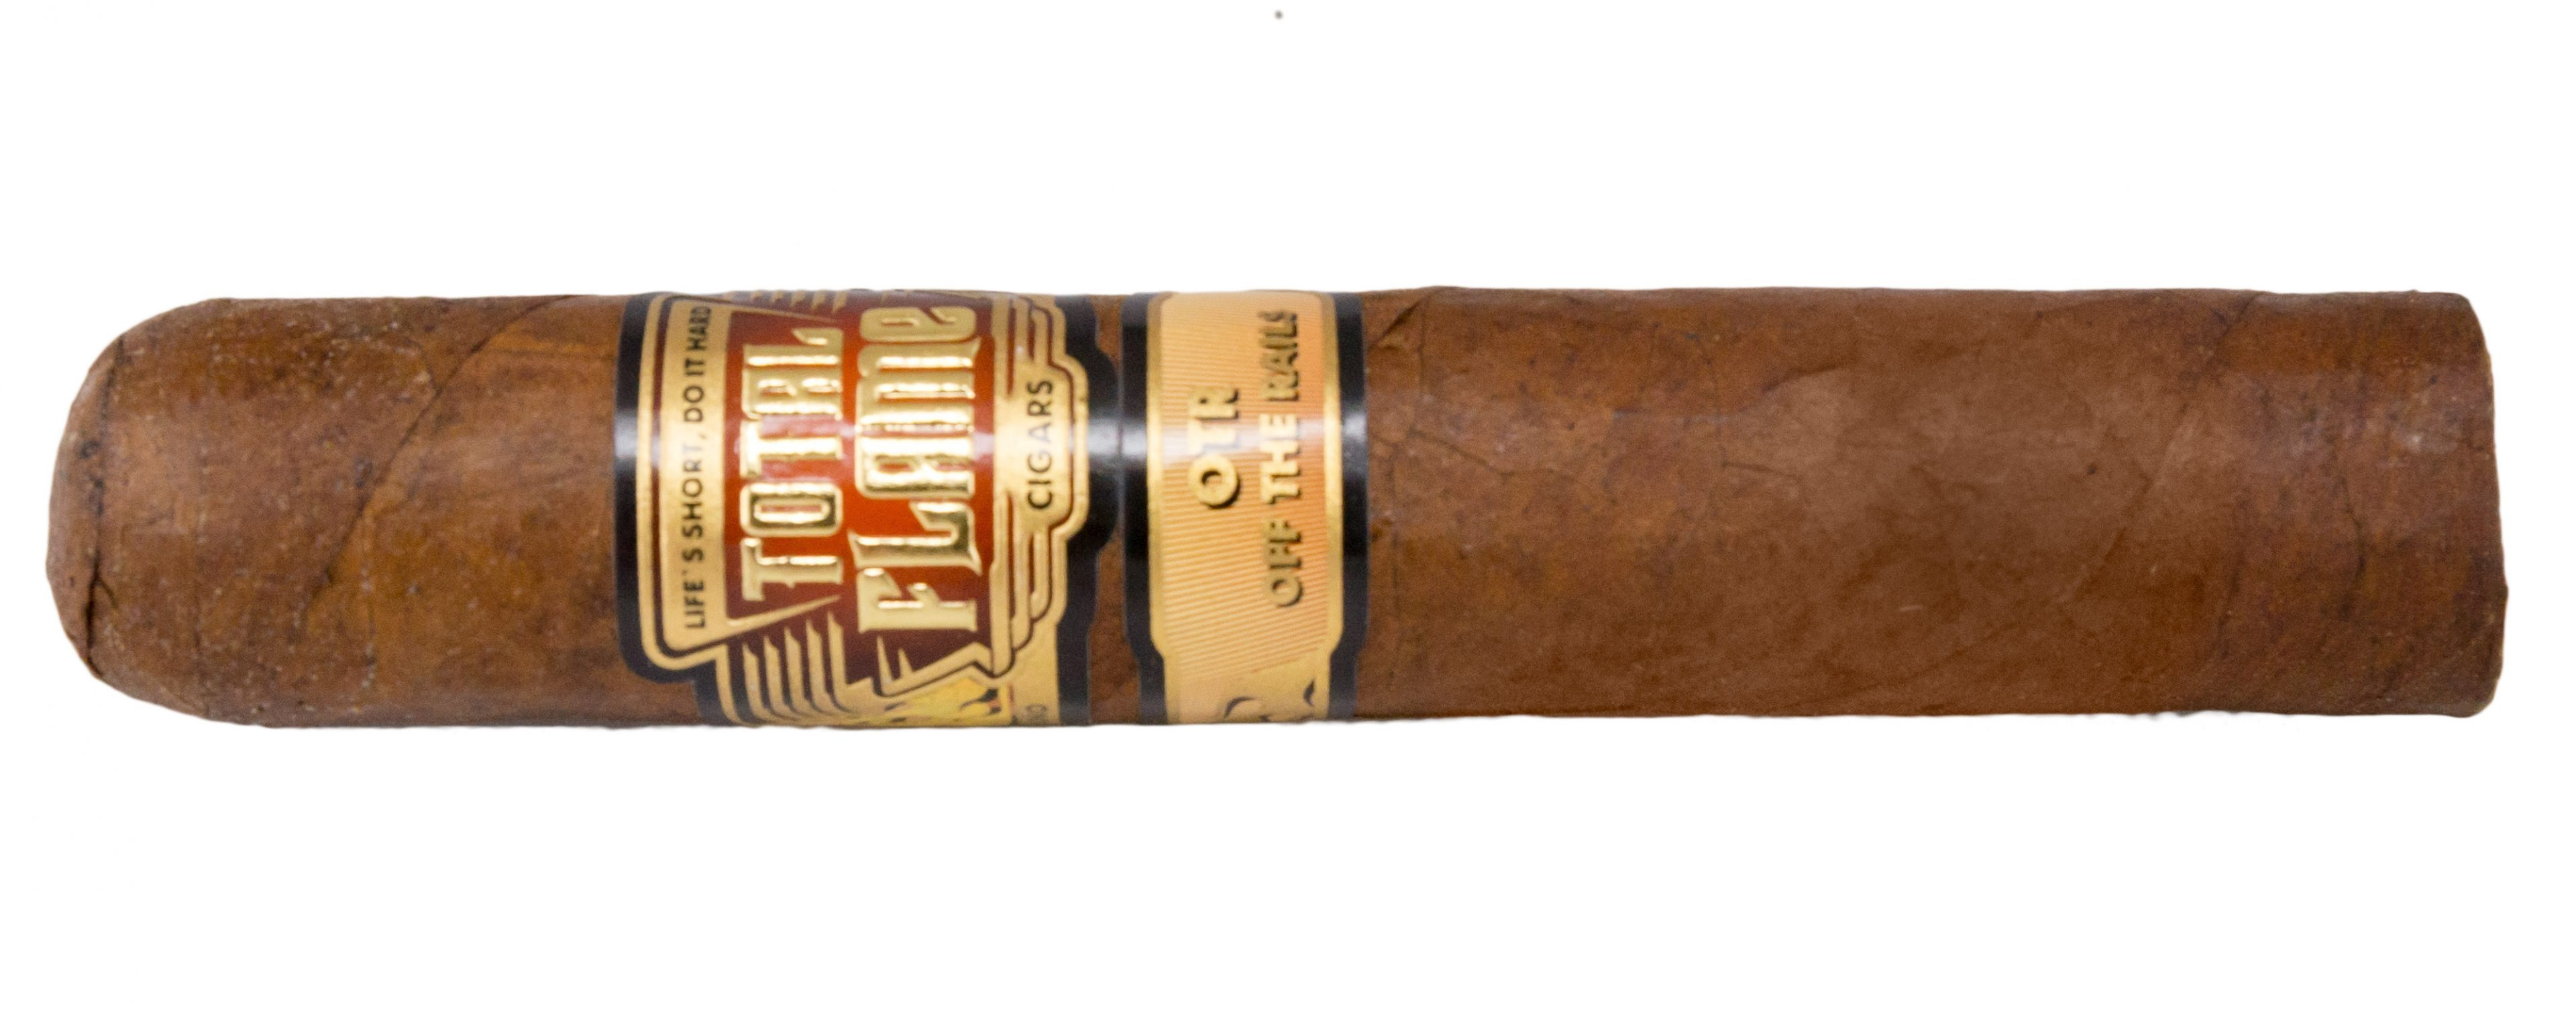 Blind Cigar Review: Total Flame   OTR (Off The Rails)